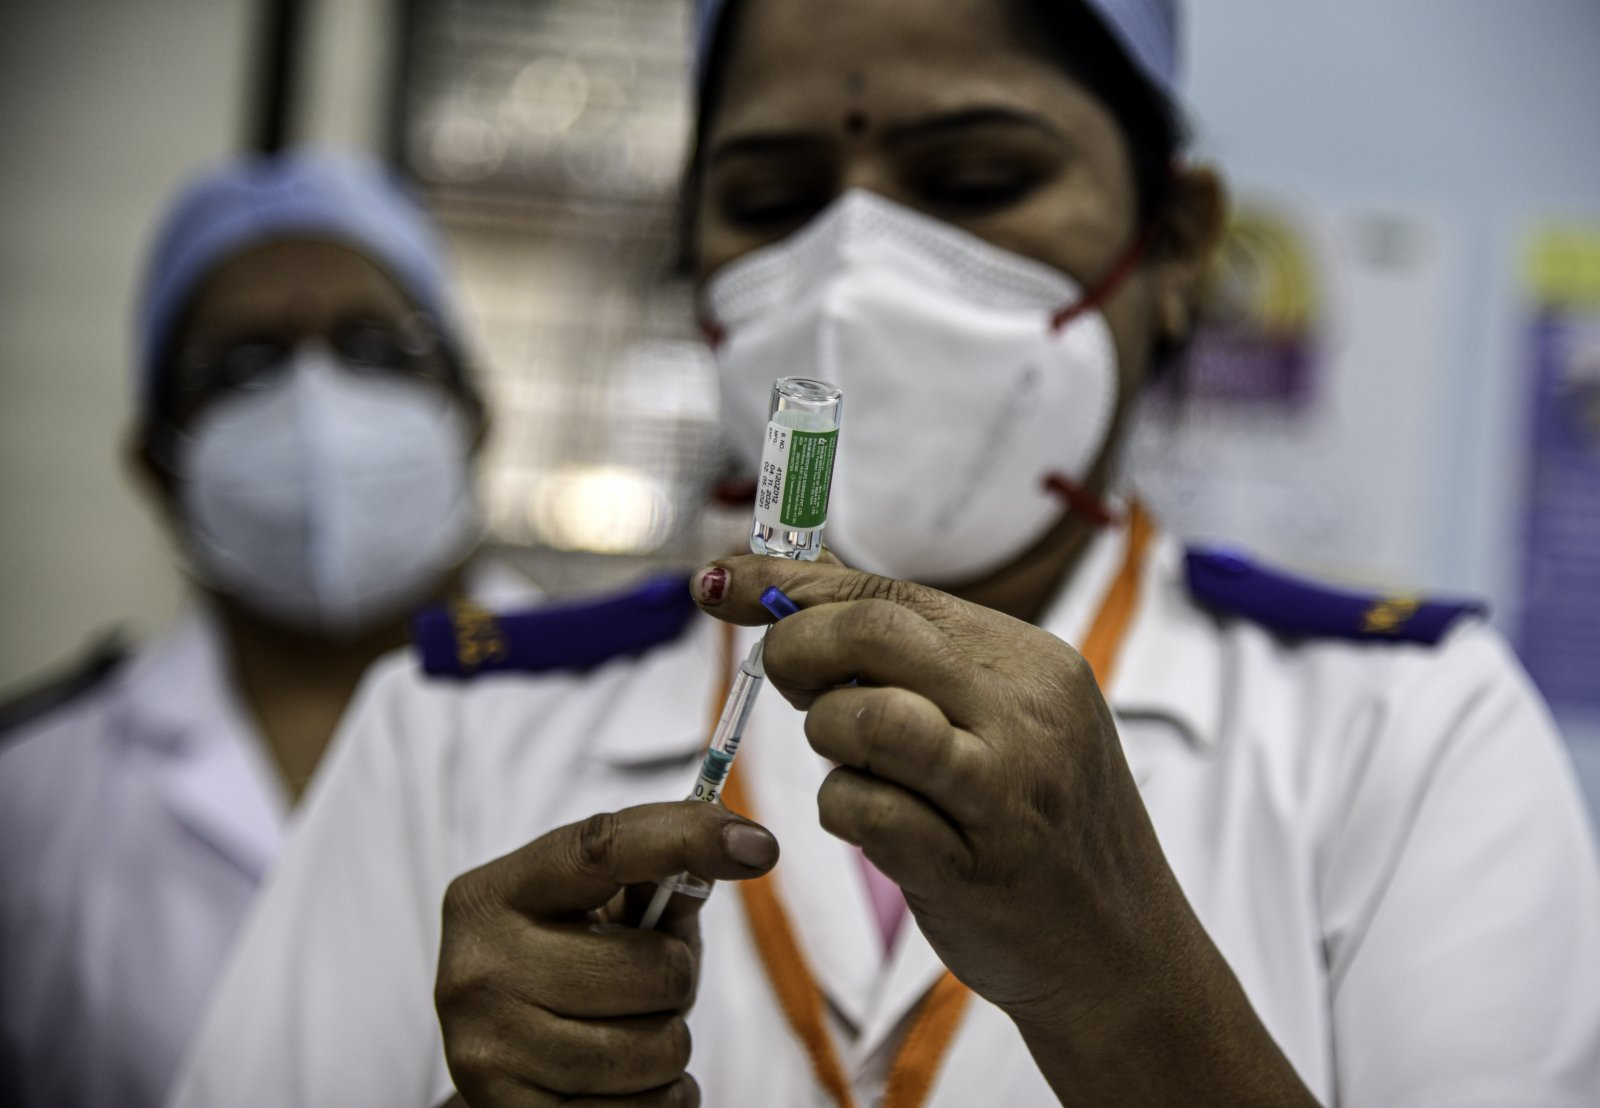 India has vaccinated more than 1 million health care workers